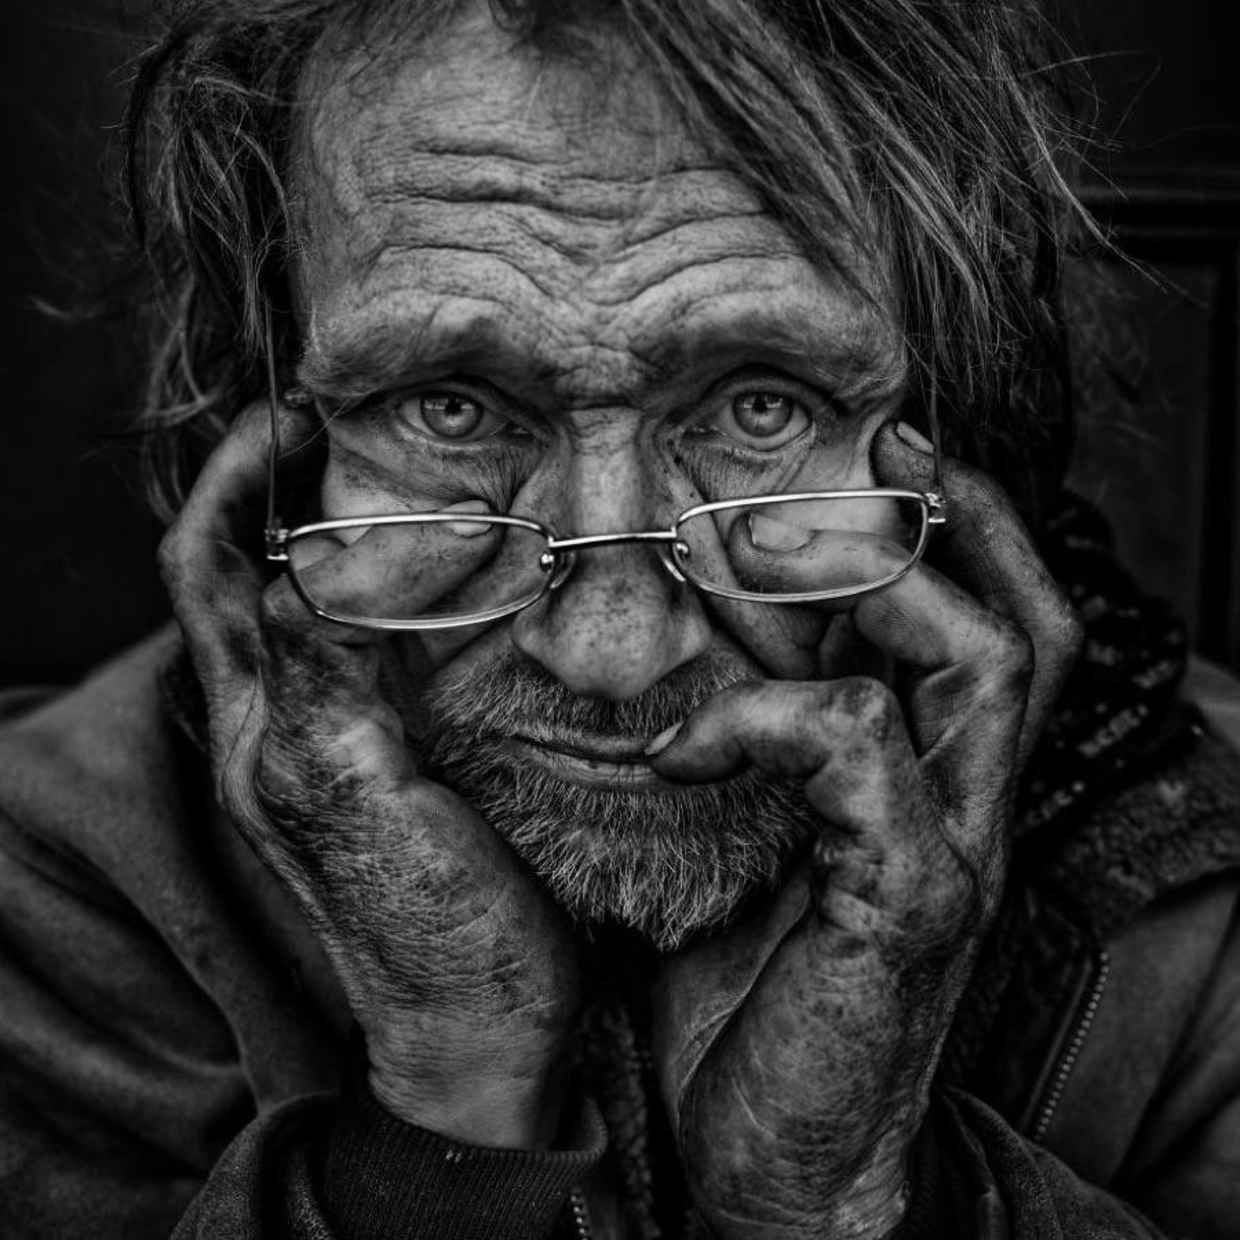 Homeless People Portraits Photography By Lee Jeffries: Striking Portraits Of Homeless People By Lee Jeffries